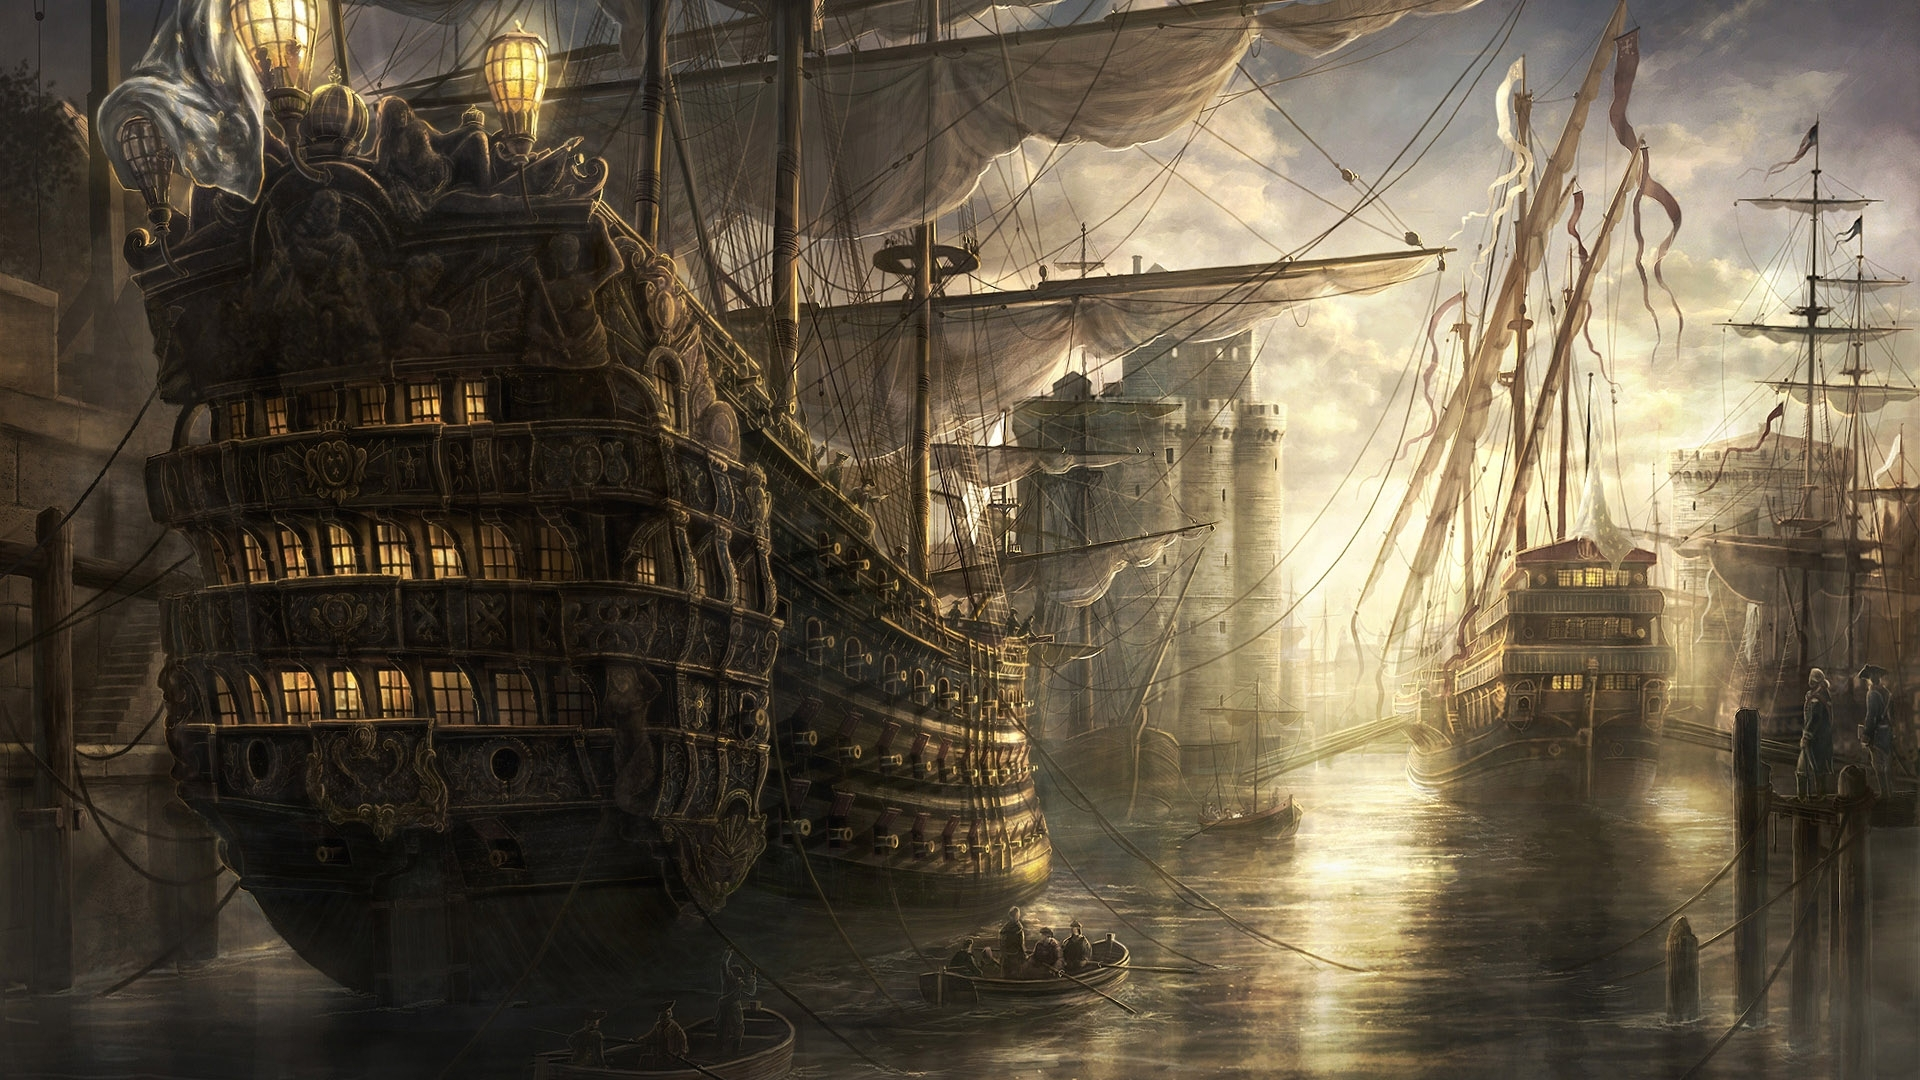 Download Wallpapers, Download 1920x1080 ship ships artwork drawings empire total war 1920x1080 wallpaper Wallpaper –Free Wallpapers Download